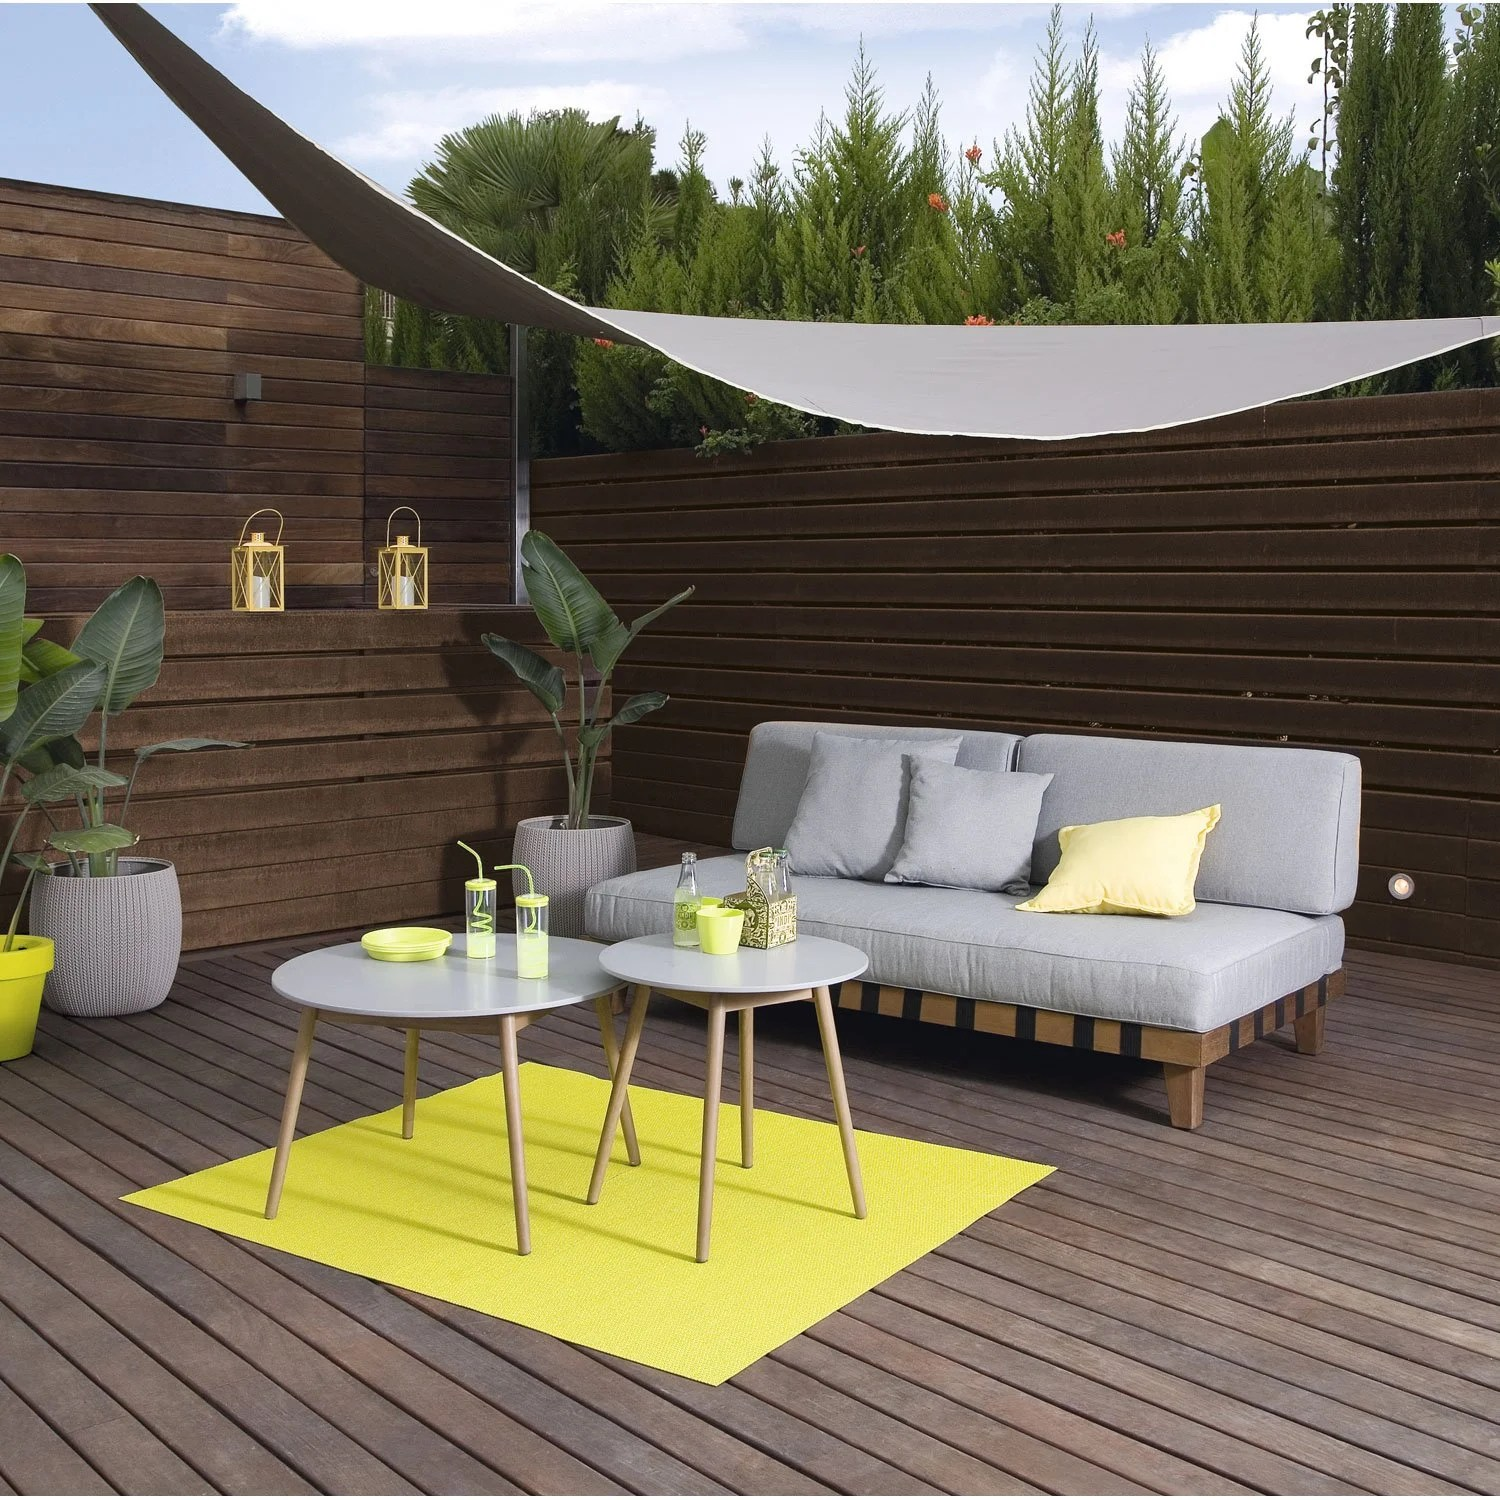 Voile D Ombrage Terrasse Voile D 39ombrage Triangulaire Taupe Fossil L 360 X L 360 Cm